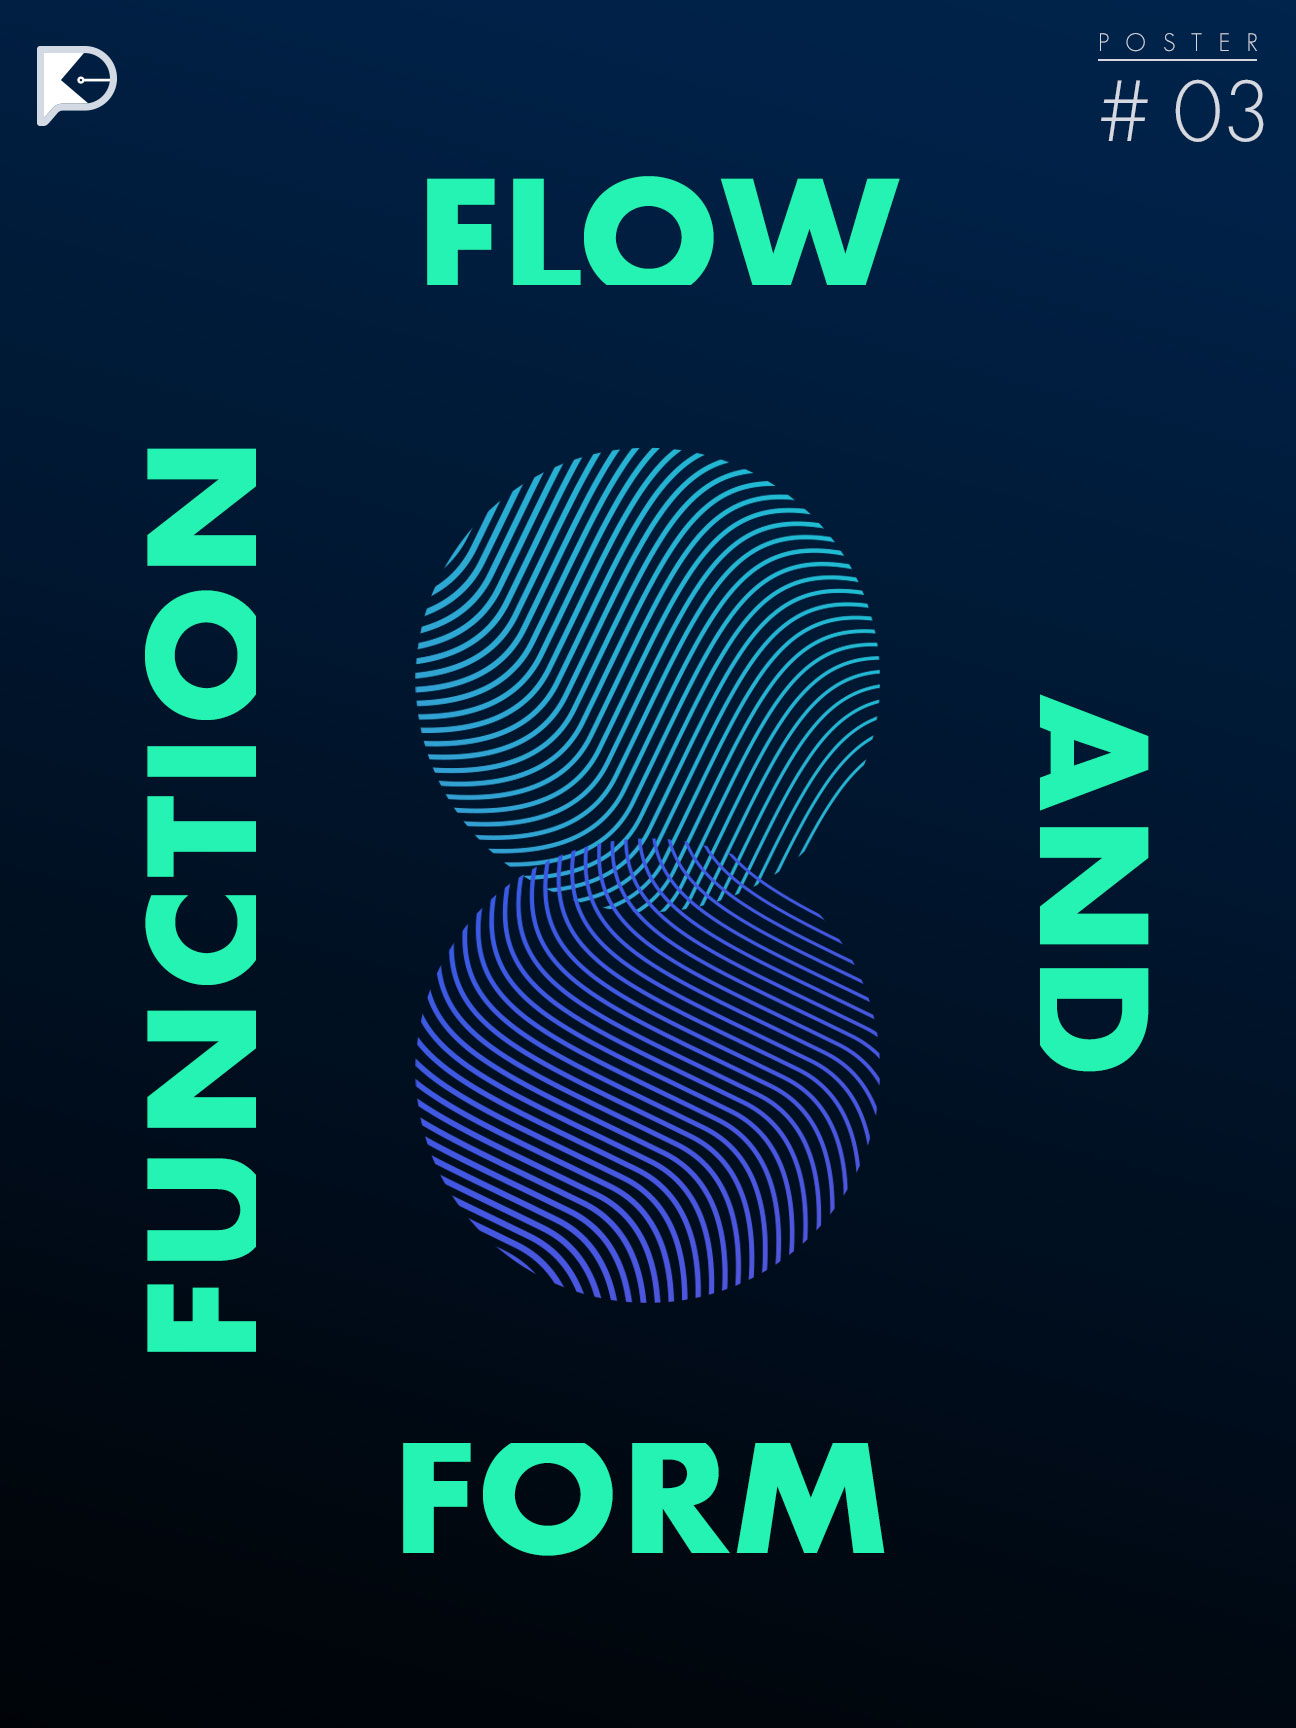 03 - Function, Flow and Form